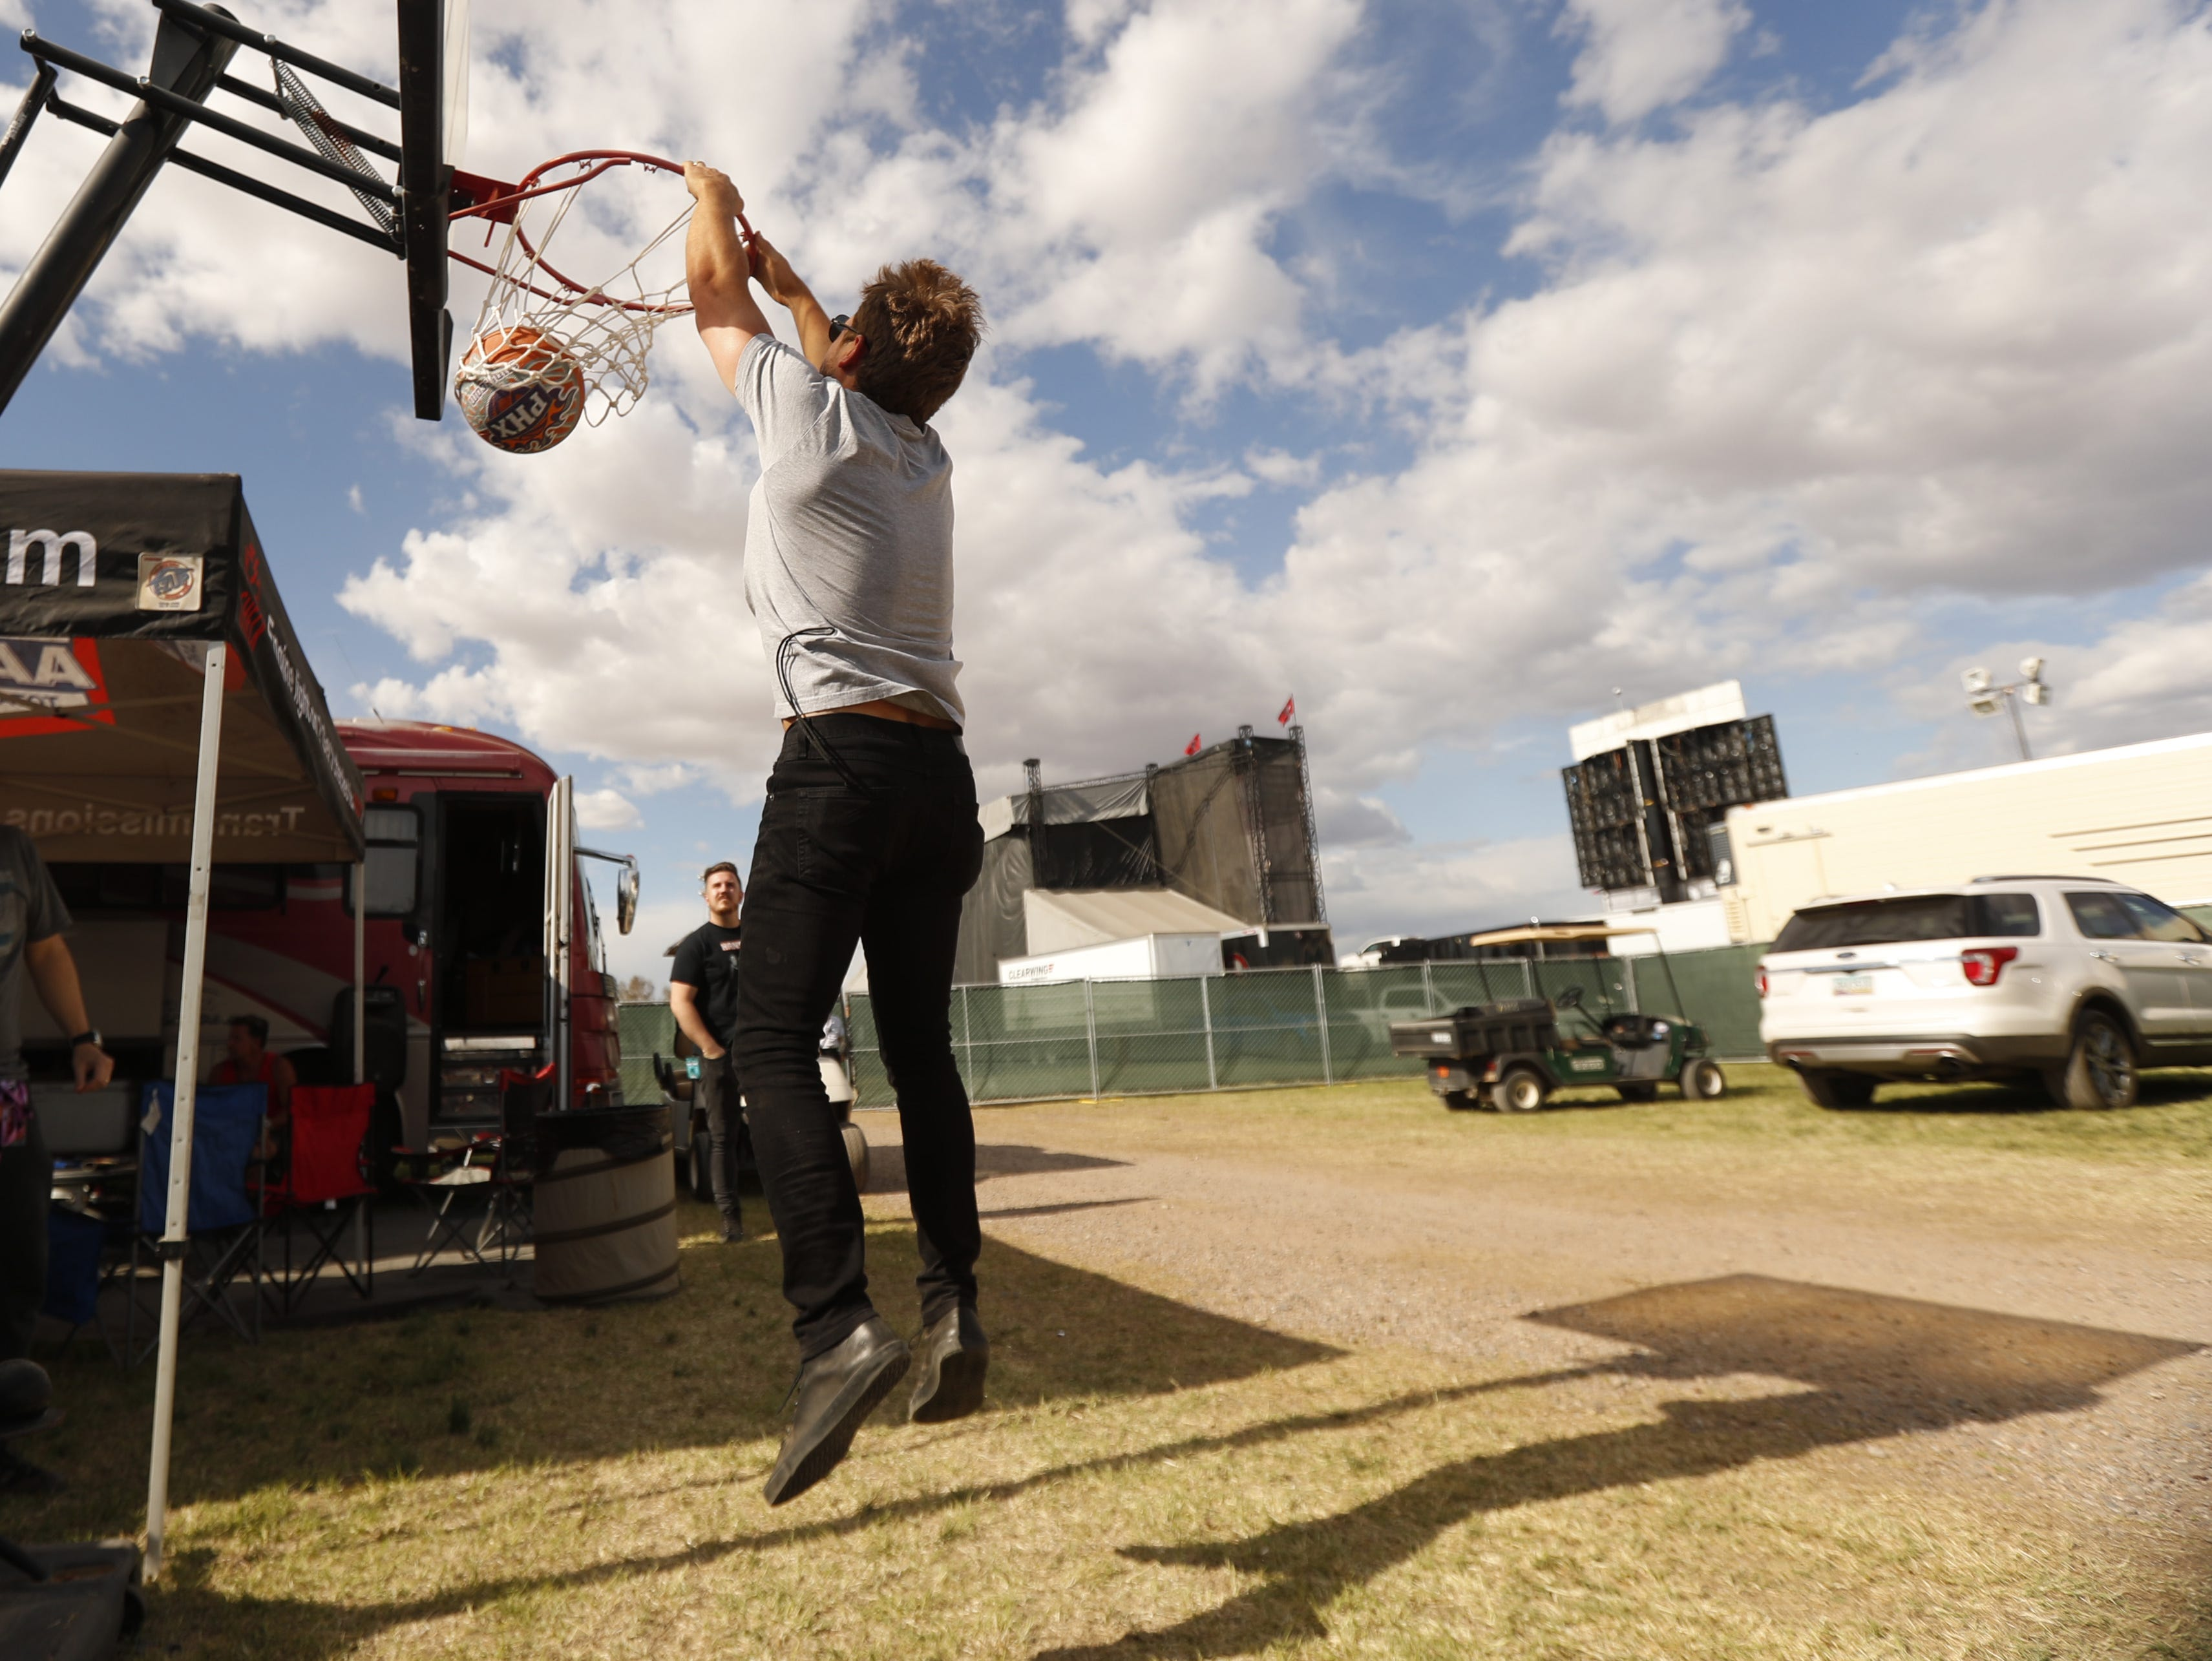 Country musician Brandon Lay dunks during a shootout against a fan, Chris Zeitler, for KMLE at Country Thunder in Florence, Ariz. on Friday, April 12, 2019.